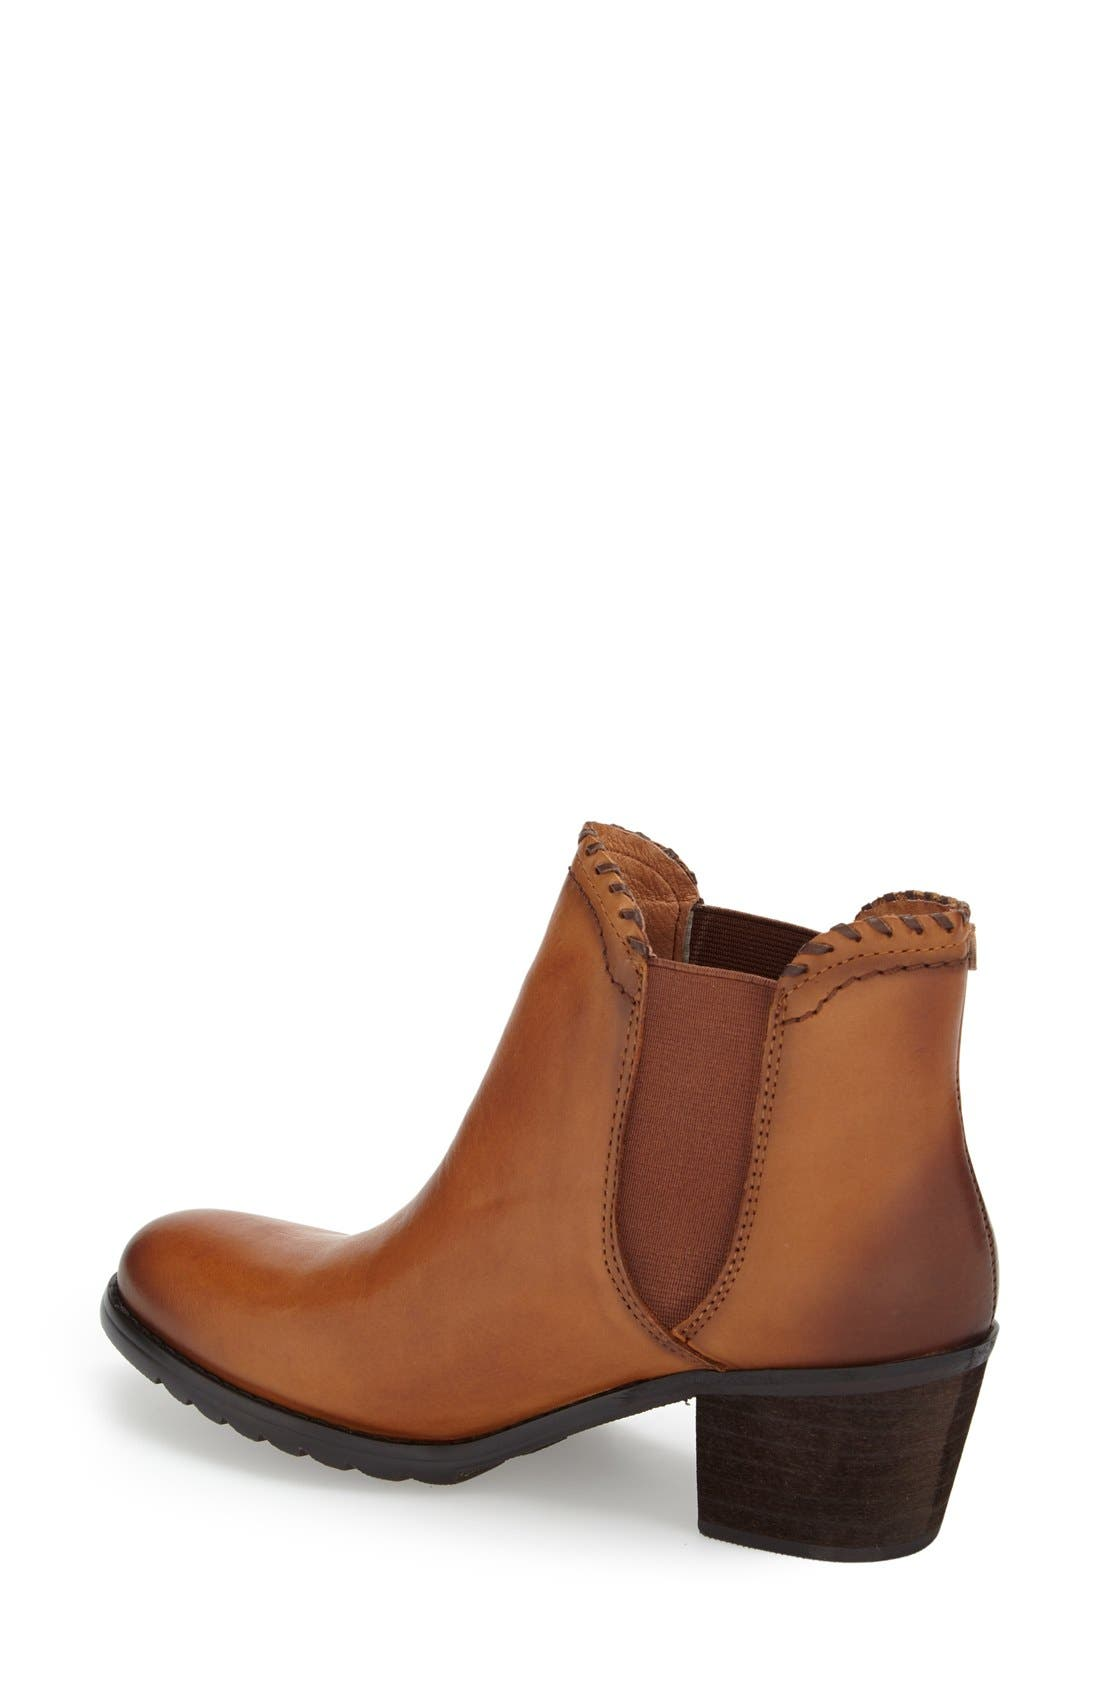 'Andorra' Water Resistant Bootie,                             Alternate thumbnail 2, color,                             200